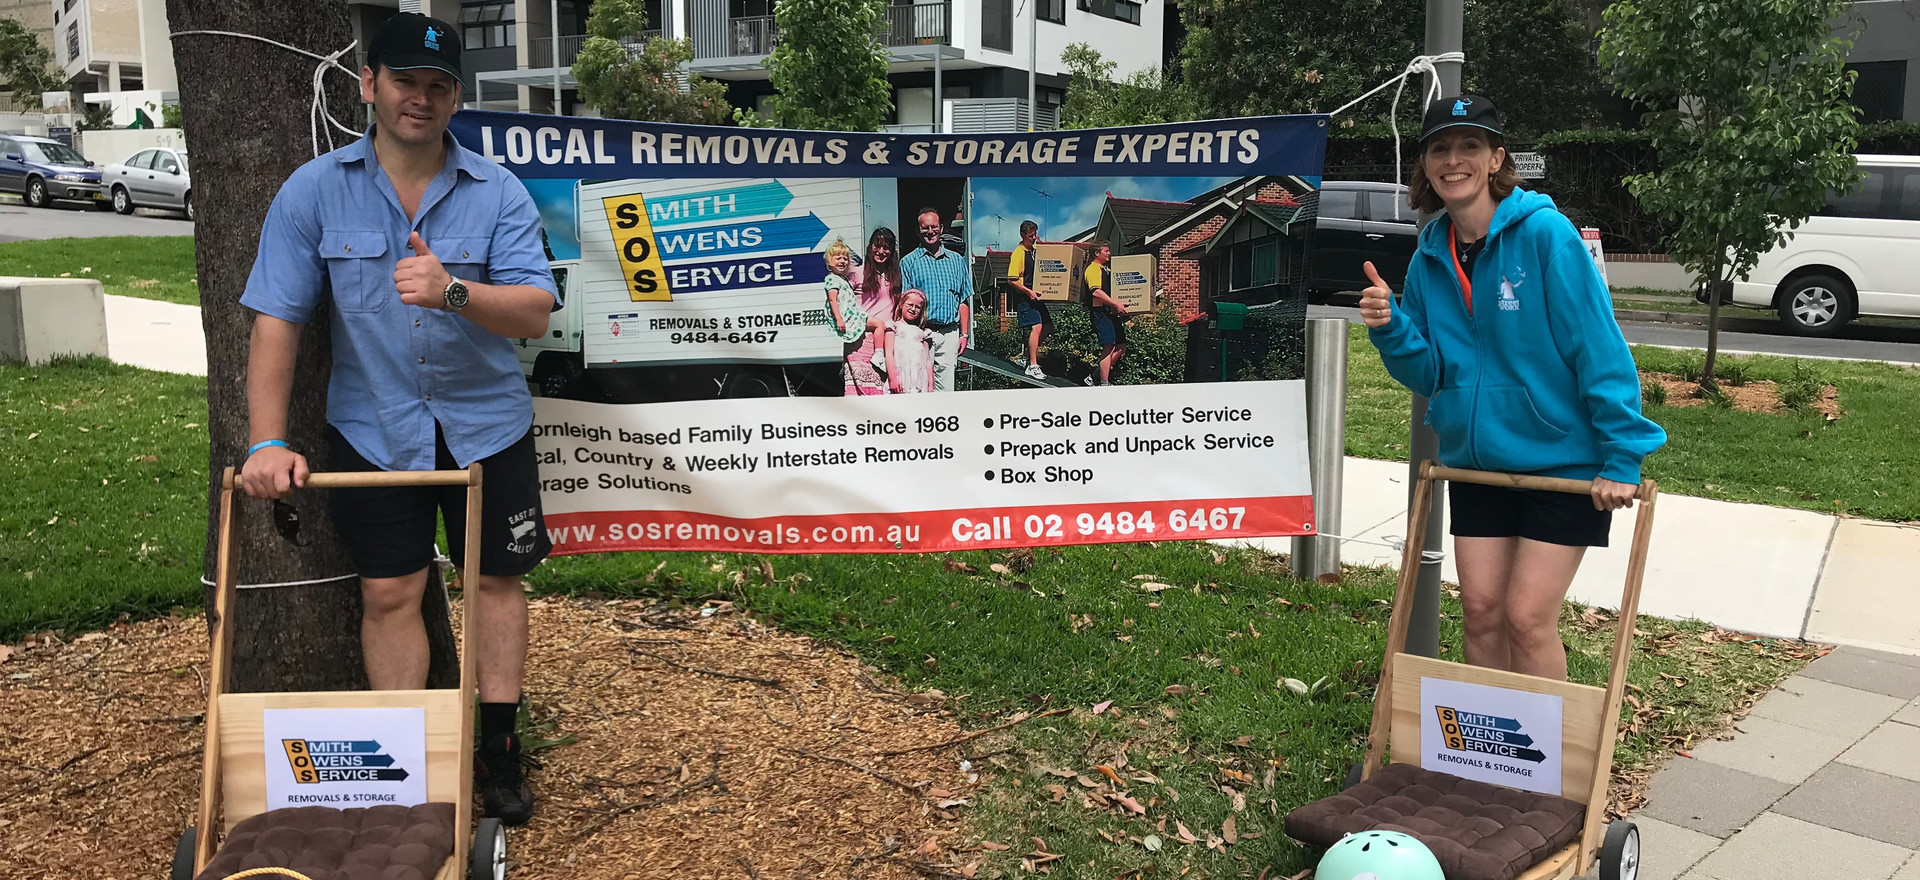 Thank you for your support SOS Removals and Storage